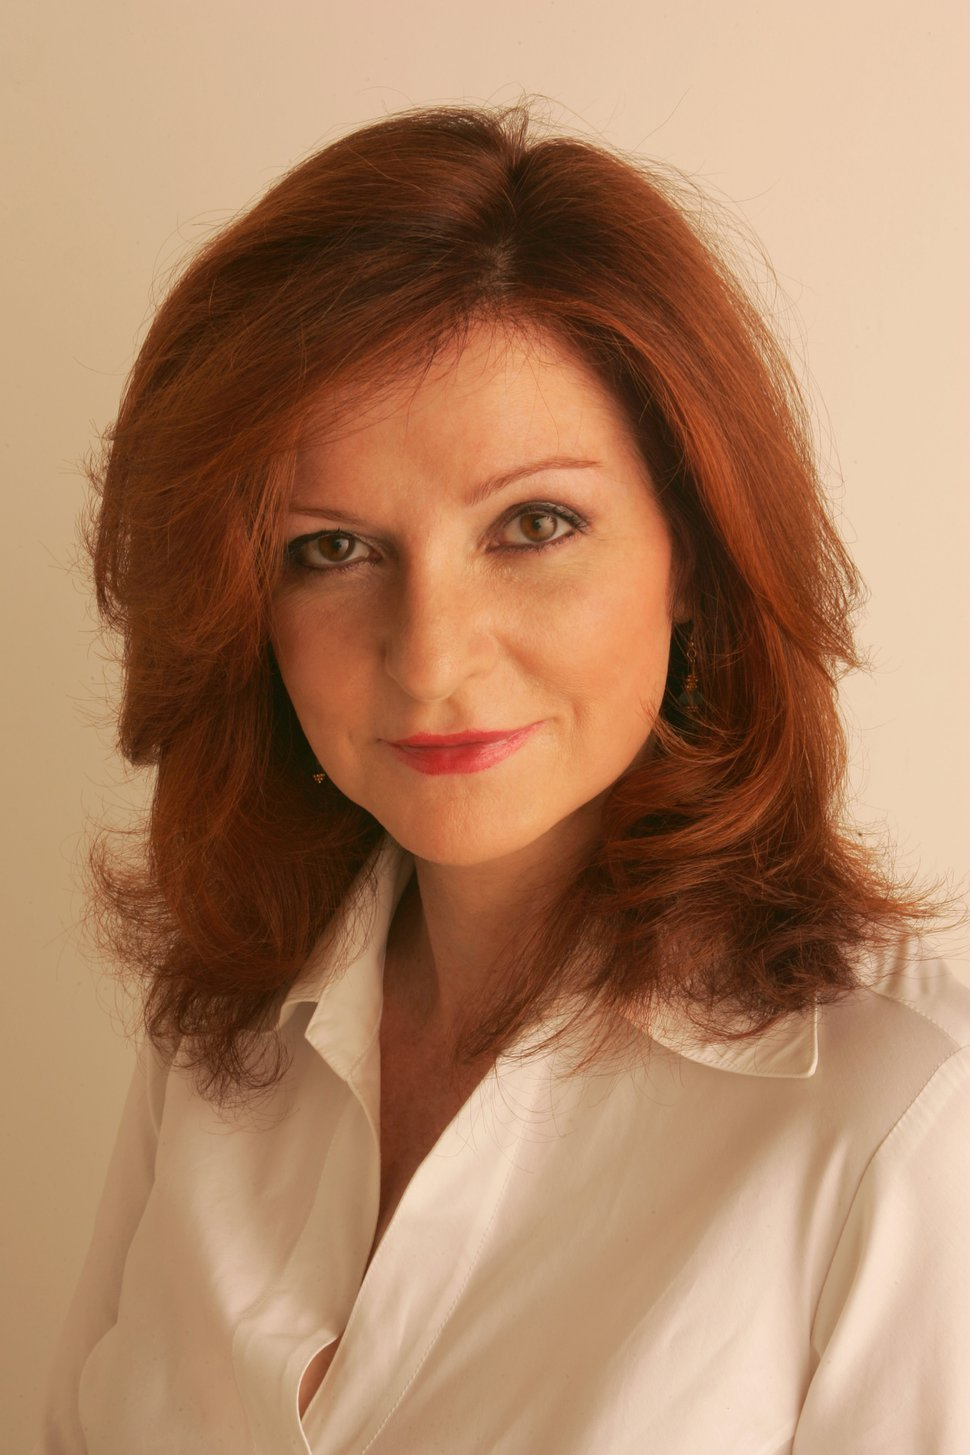 Maureen Dowd (CREDIT: The New York Times)